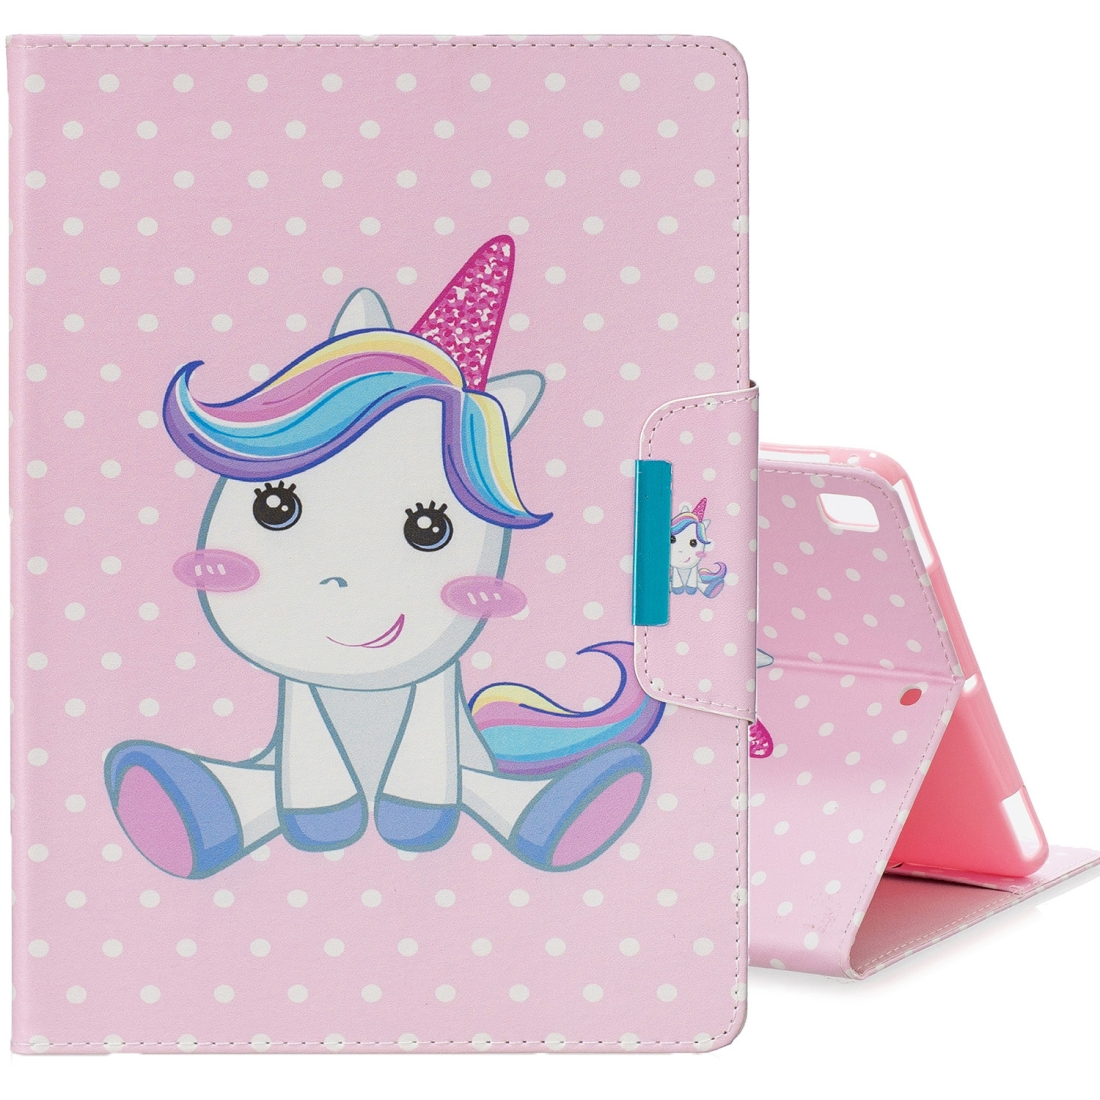 Artistic Leather iPad Air Case/ Air 2/ iPad 9.7 (2017) (2018) with Slim Profile (Unicorn)